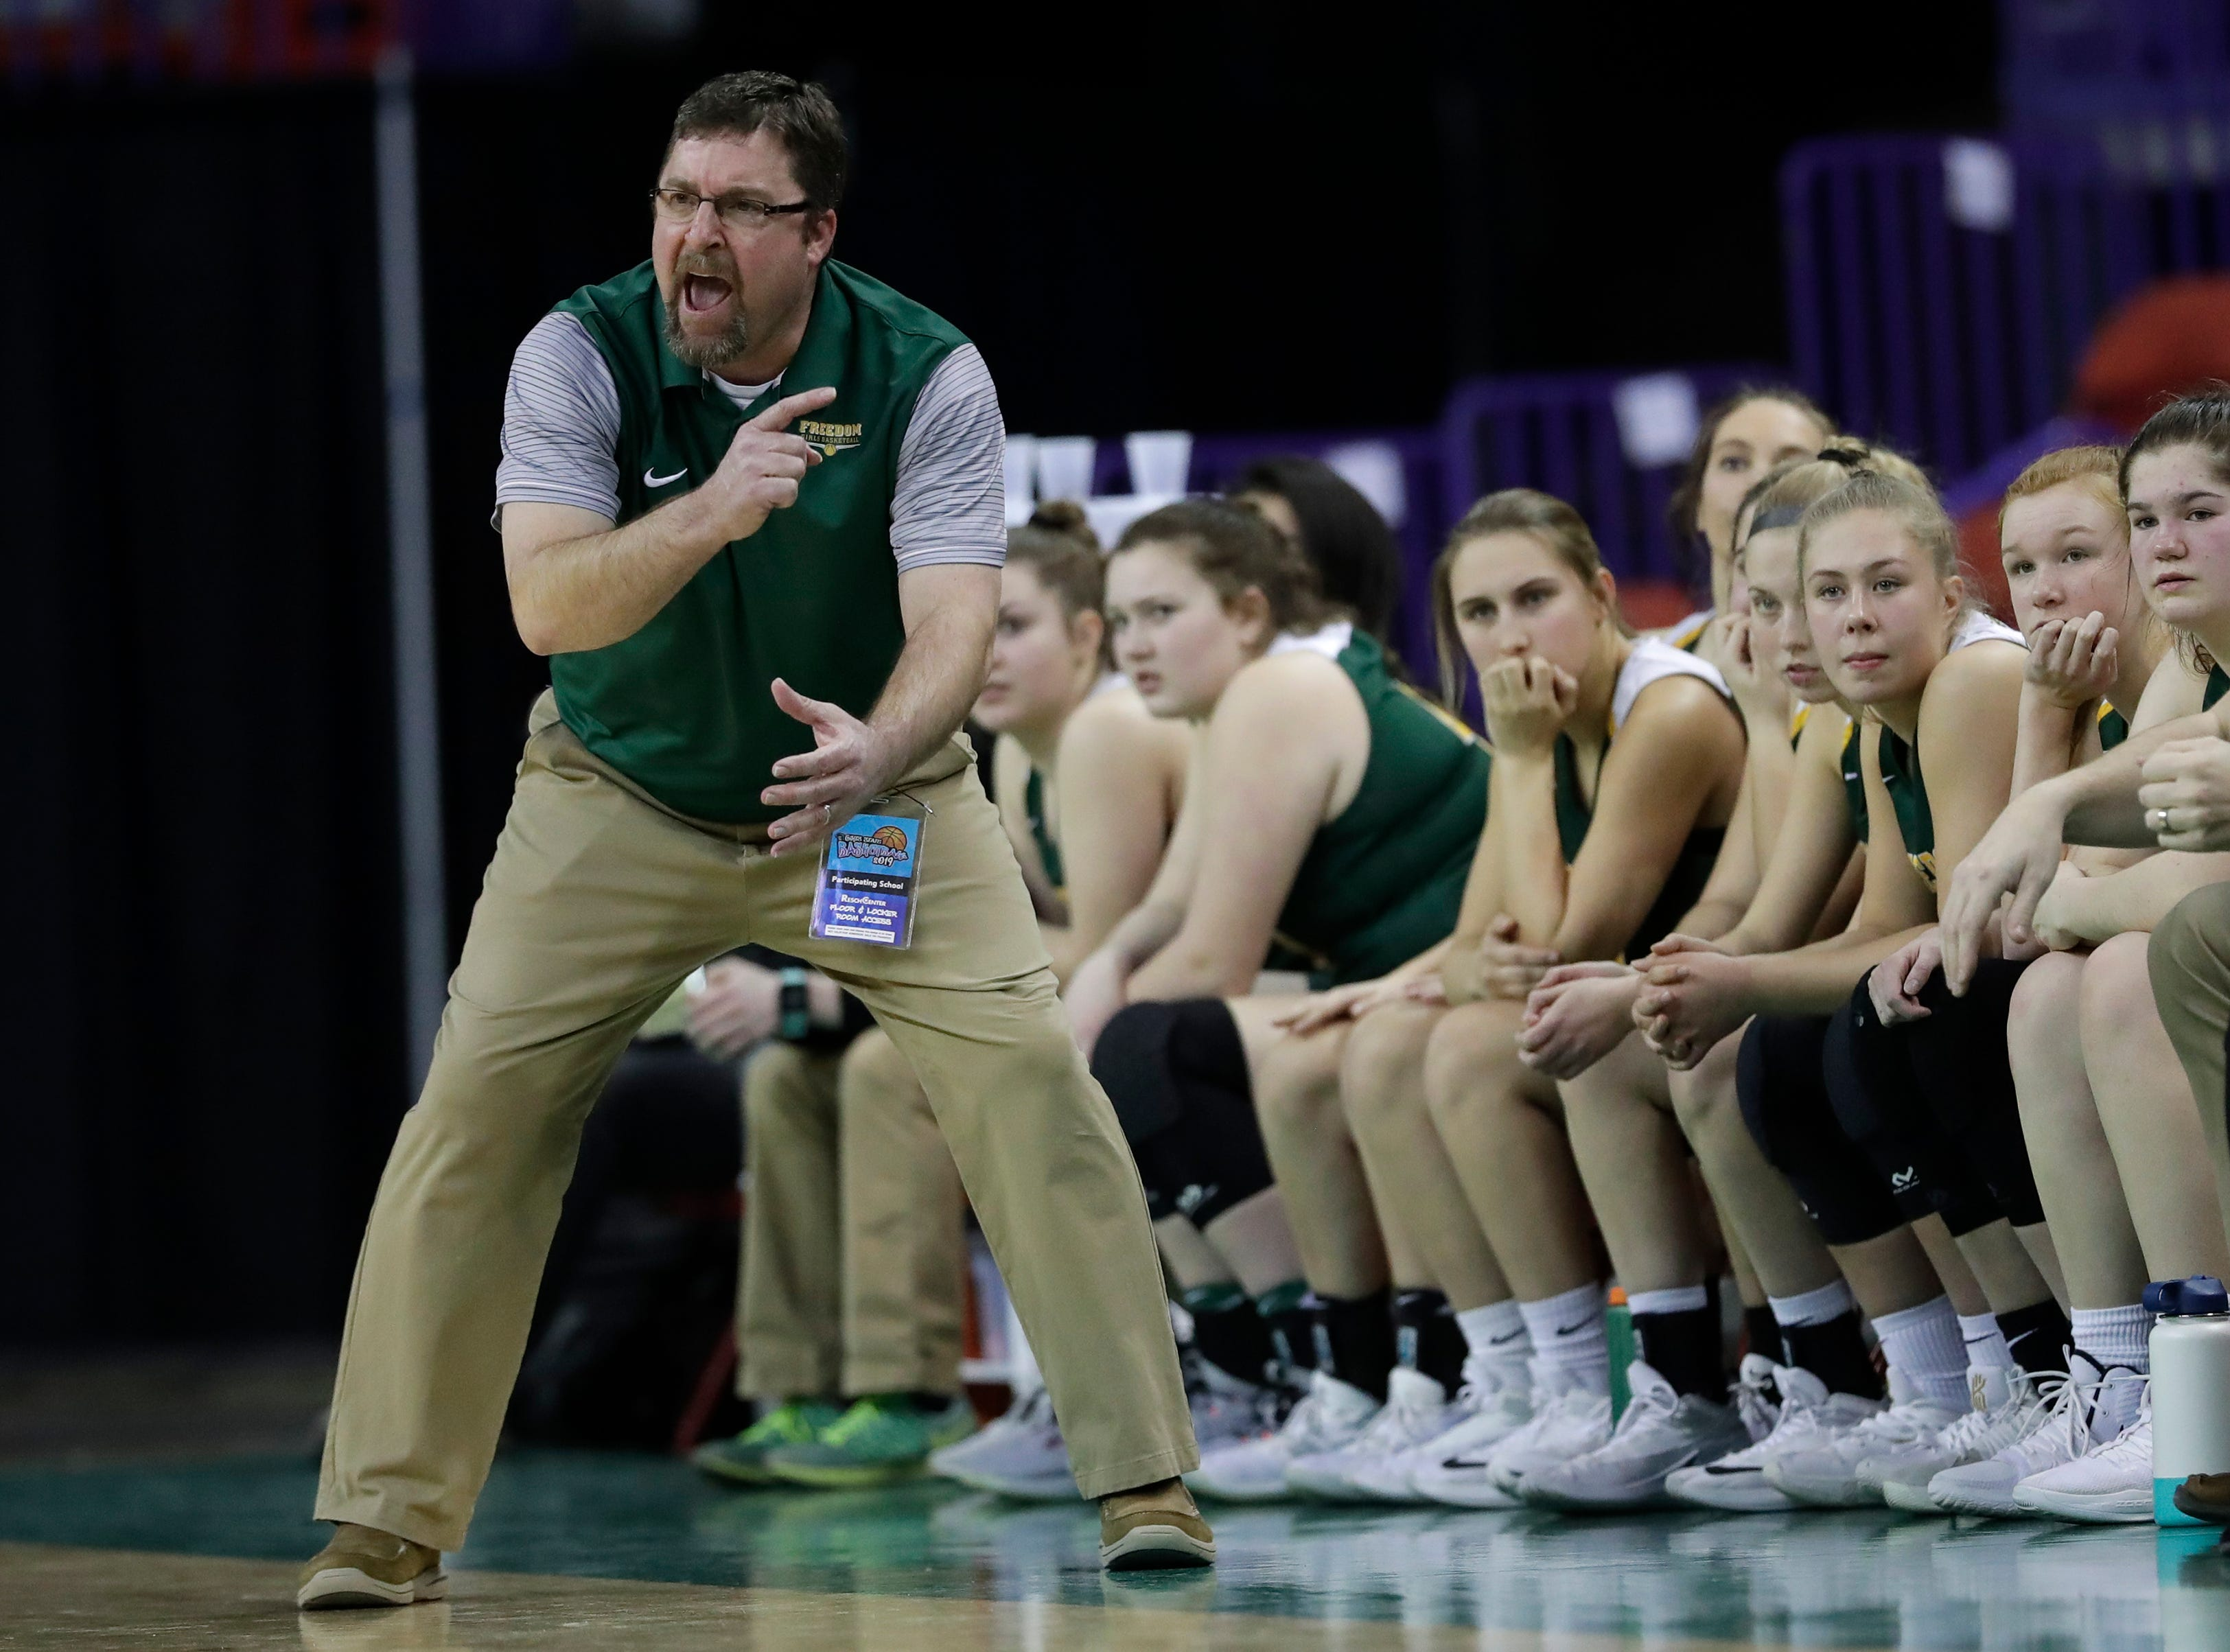 Freedom head coach Mike Vander Loop motivates his players against Laconia during their Division 3 semifinal game at the WIAA girls state basketball tournament Thursday, March 7, 2019, at the Resch Center in Ashwaubenon, Wis. Dan Powers/USA TODAY NETWORK-Wisconsin